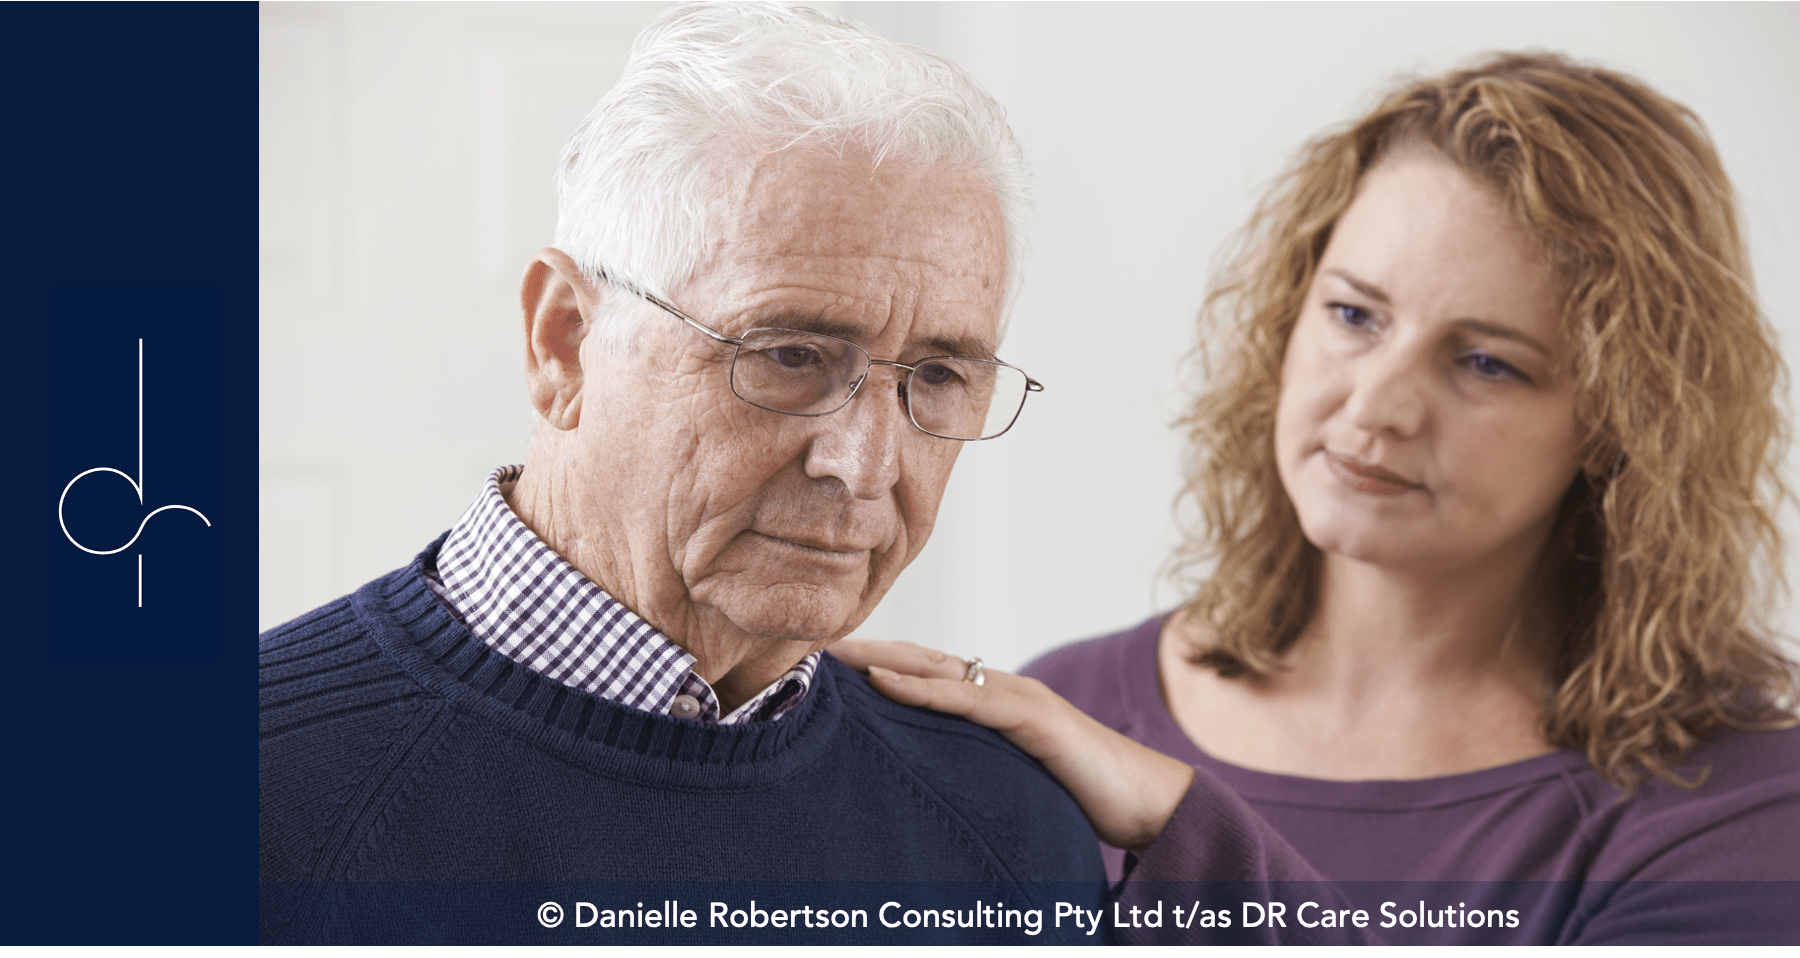 Managing Care for Someone Diagnosed with Dementia